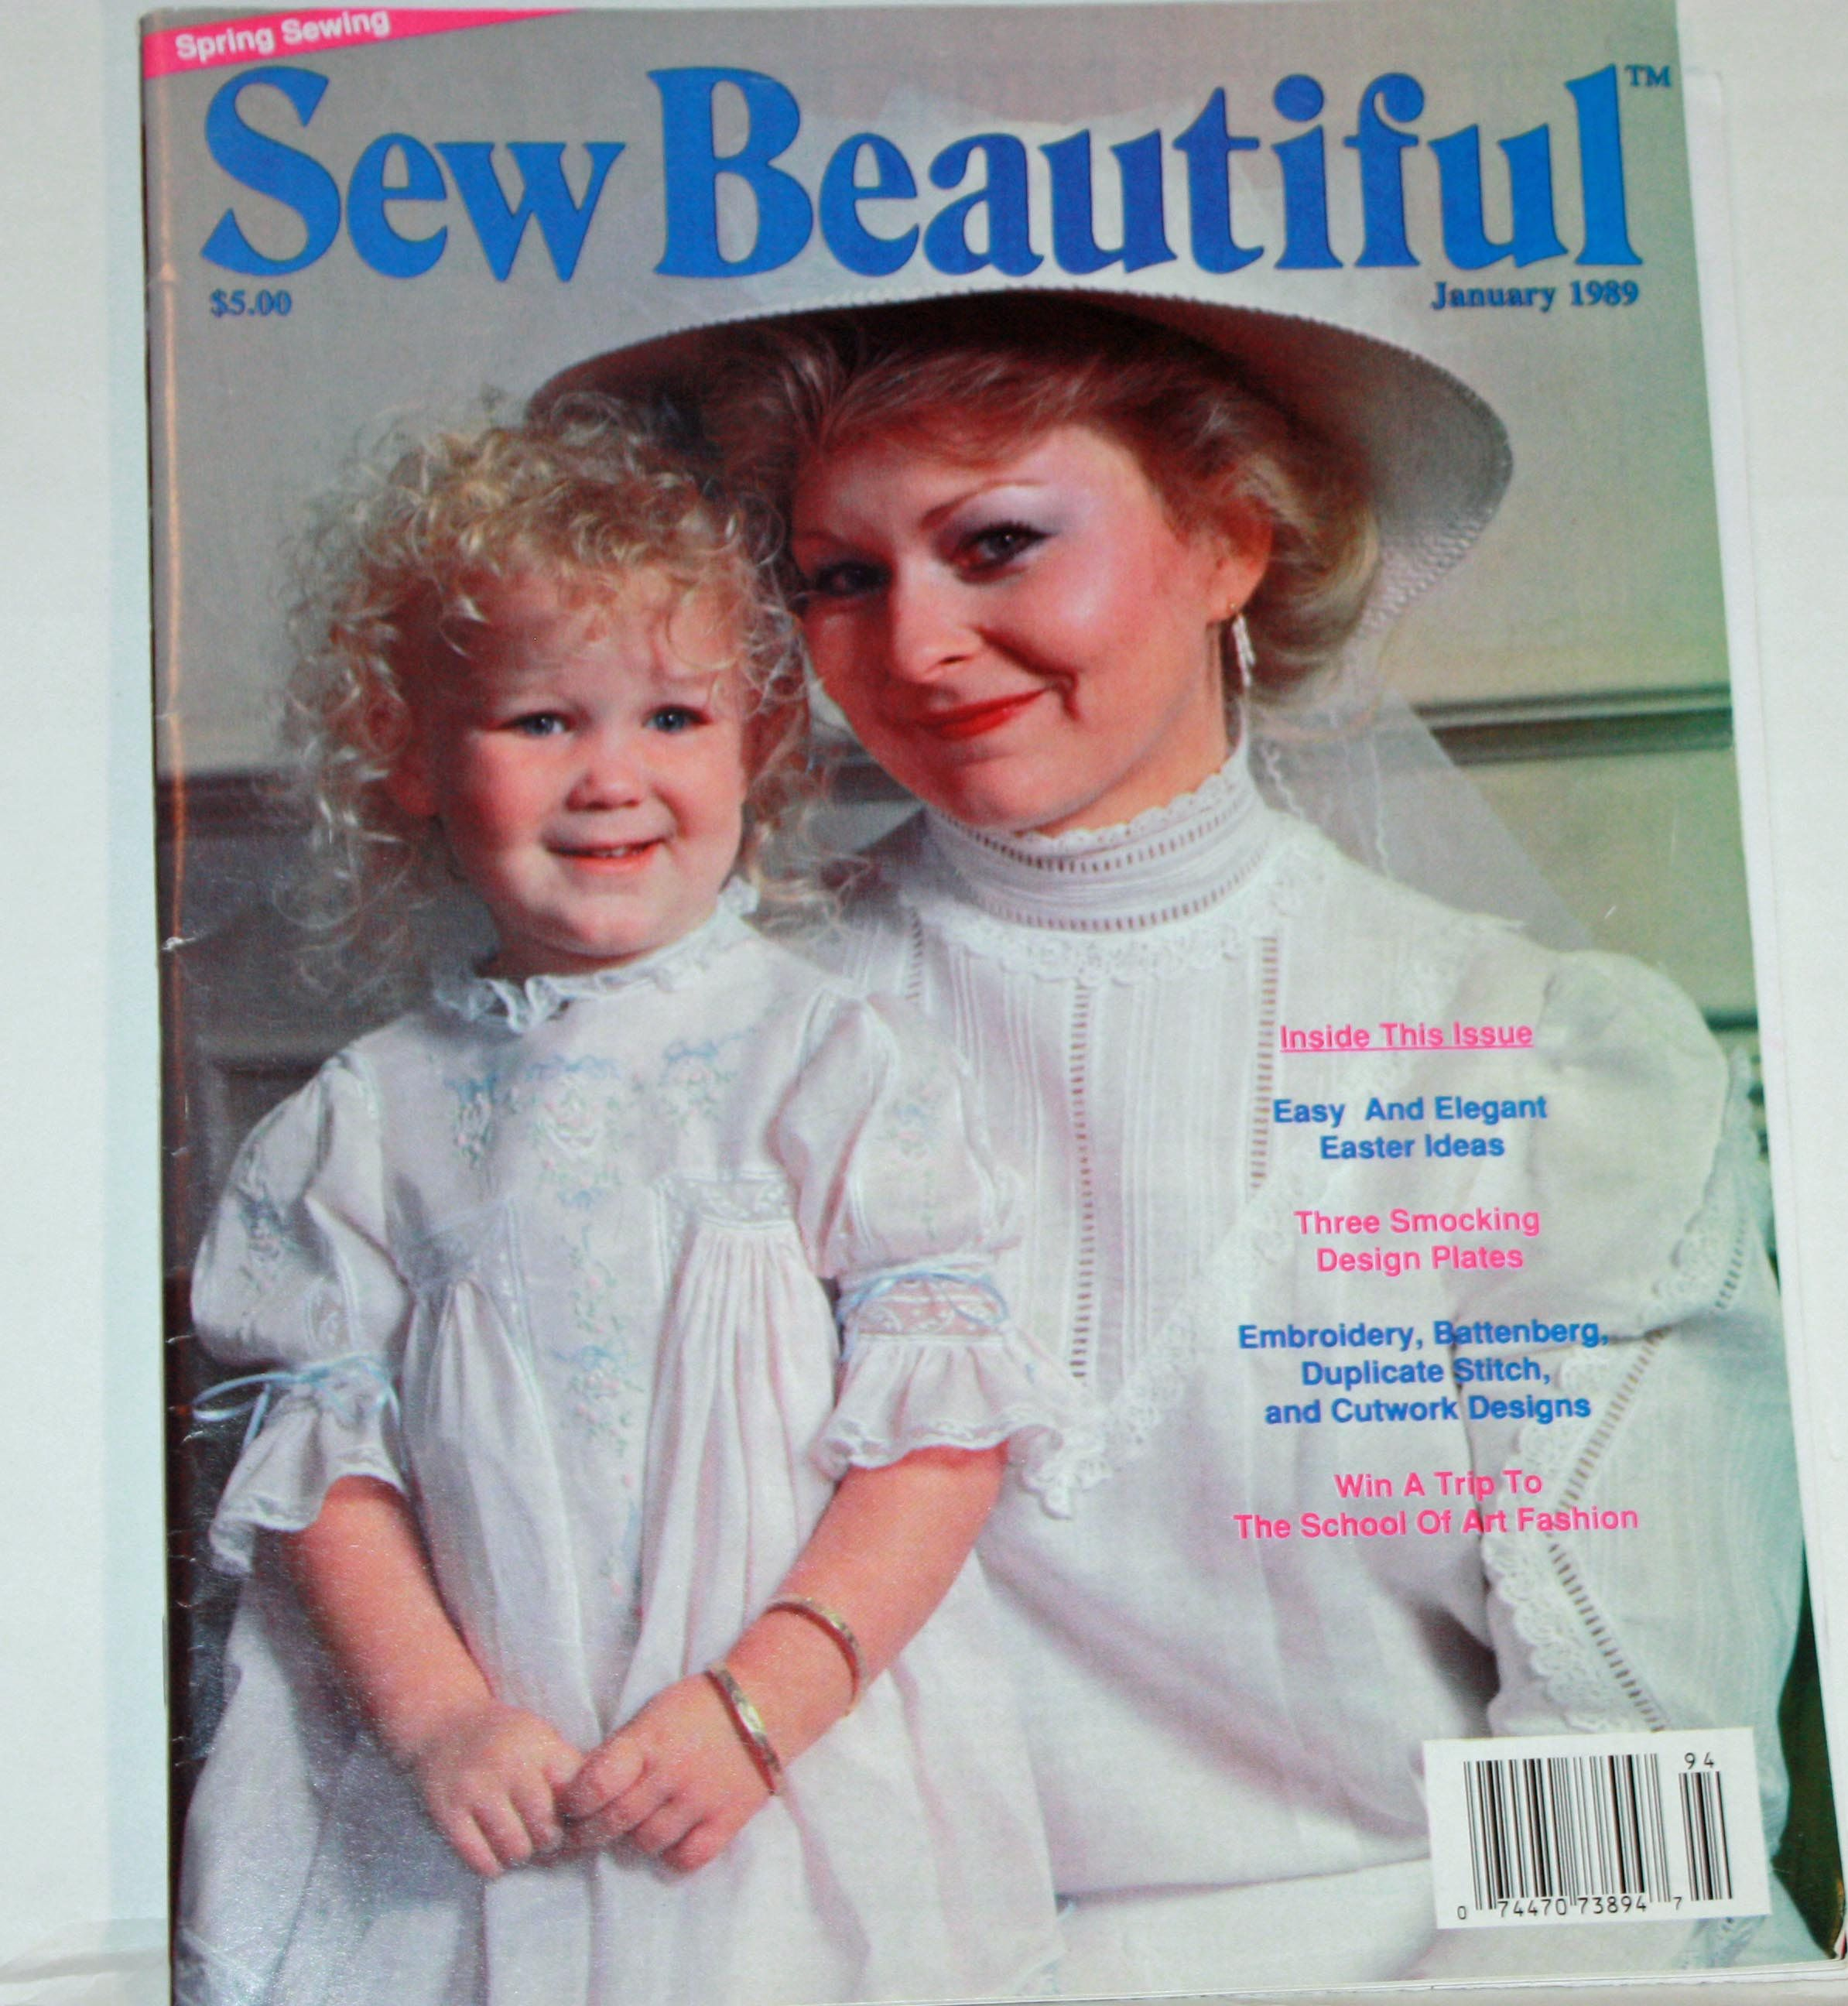 Vintage 1980s Sew Beautiful Magaine January 1989 Winter Issue 1989 Heirloom Sewing Martha Pullen Sewing Patterns Girls Spring Sewing Heirloom Sewing